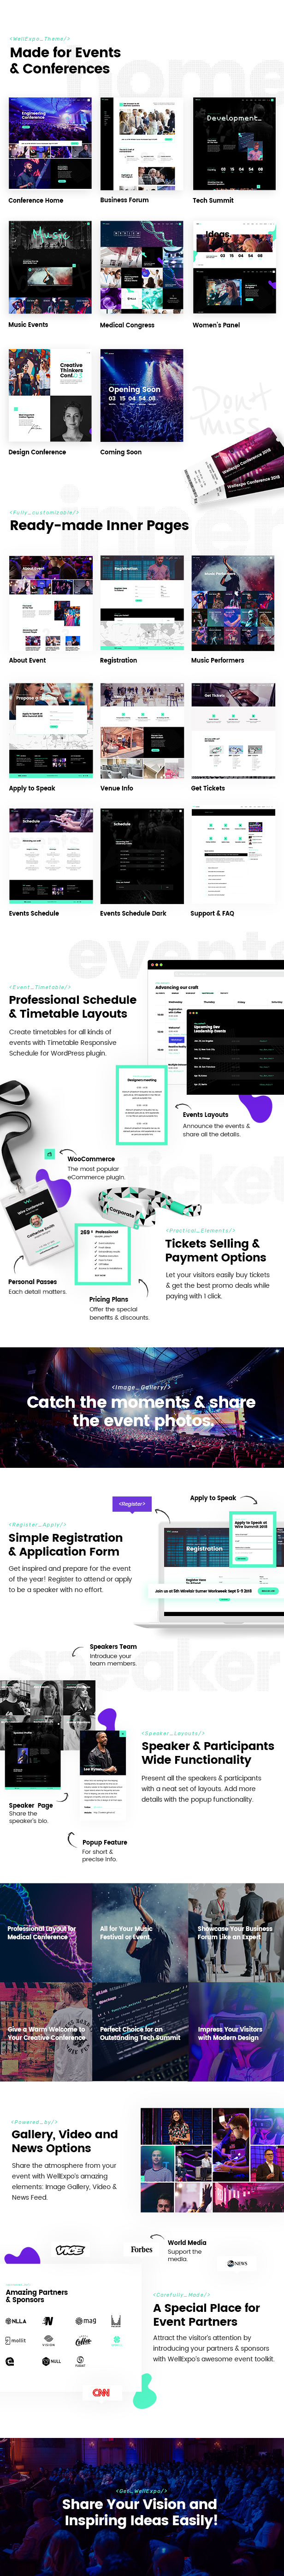 WellExpo - Event & Conference Theme - 1